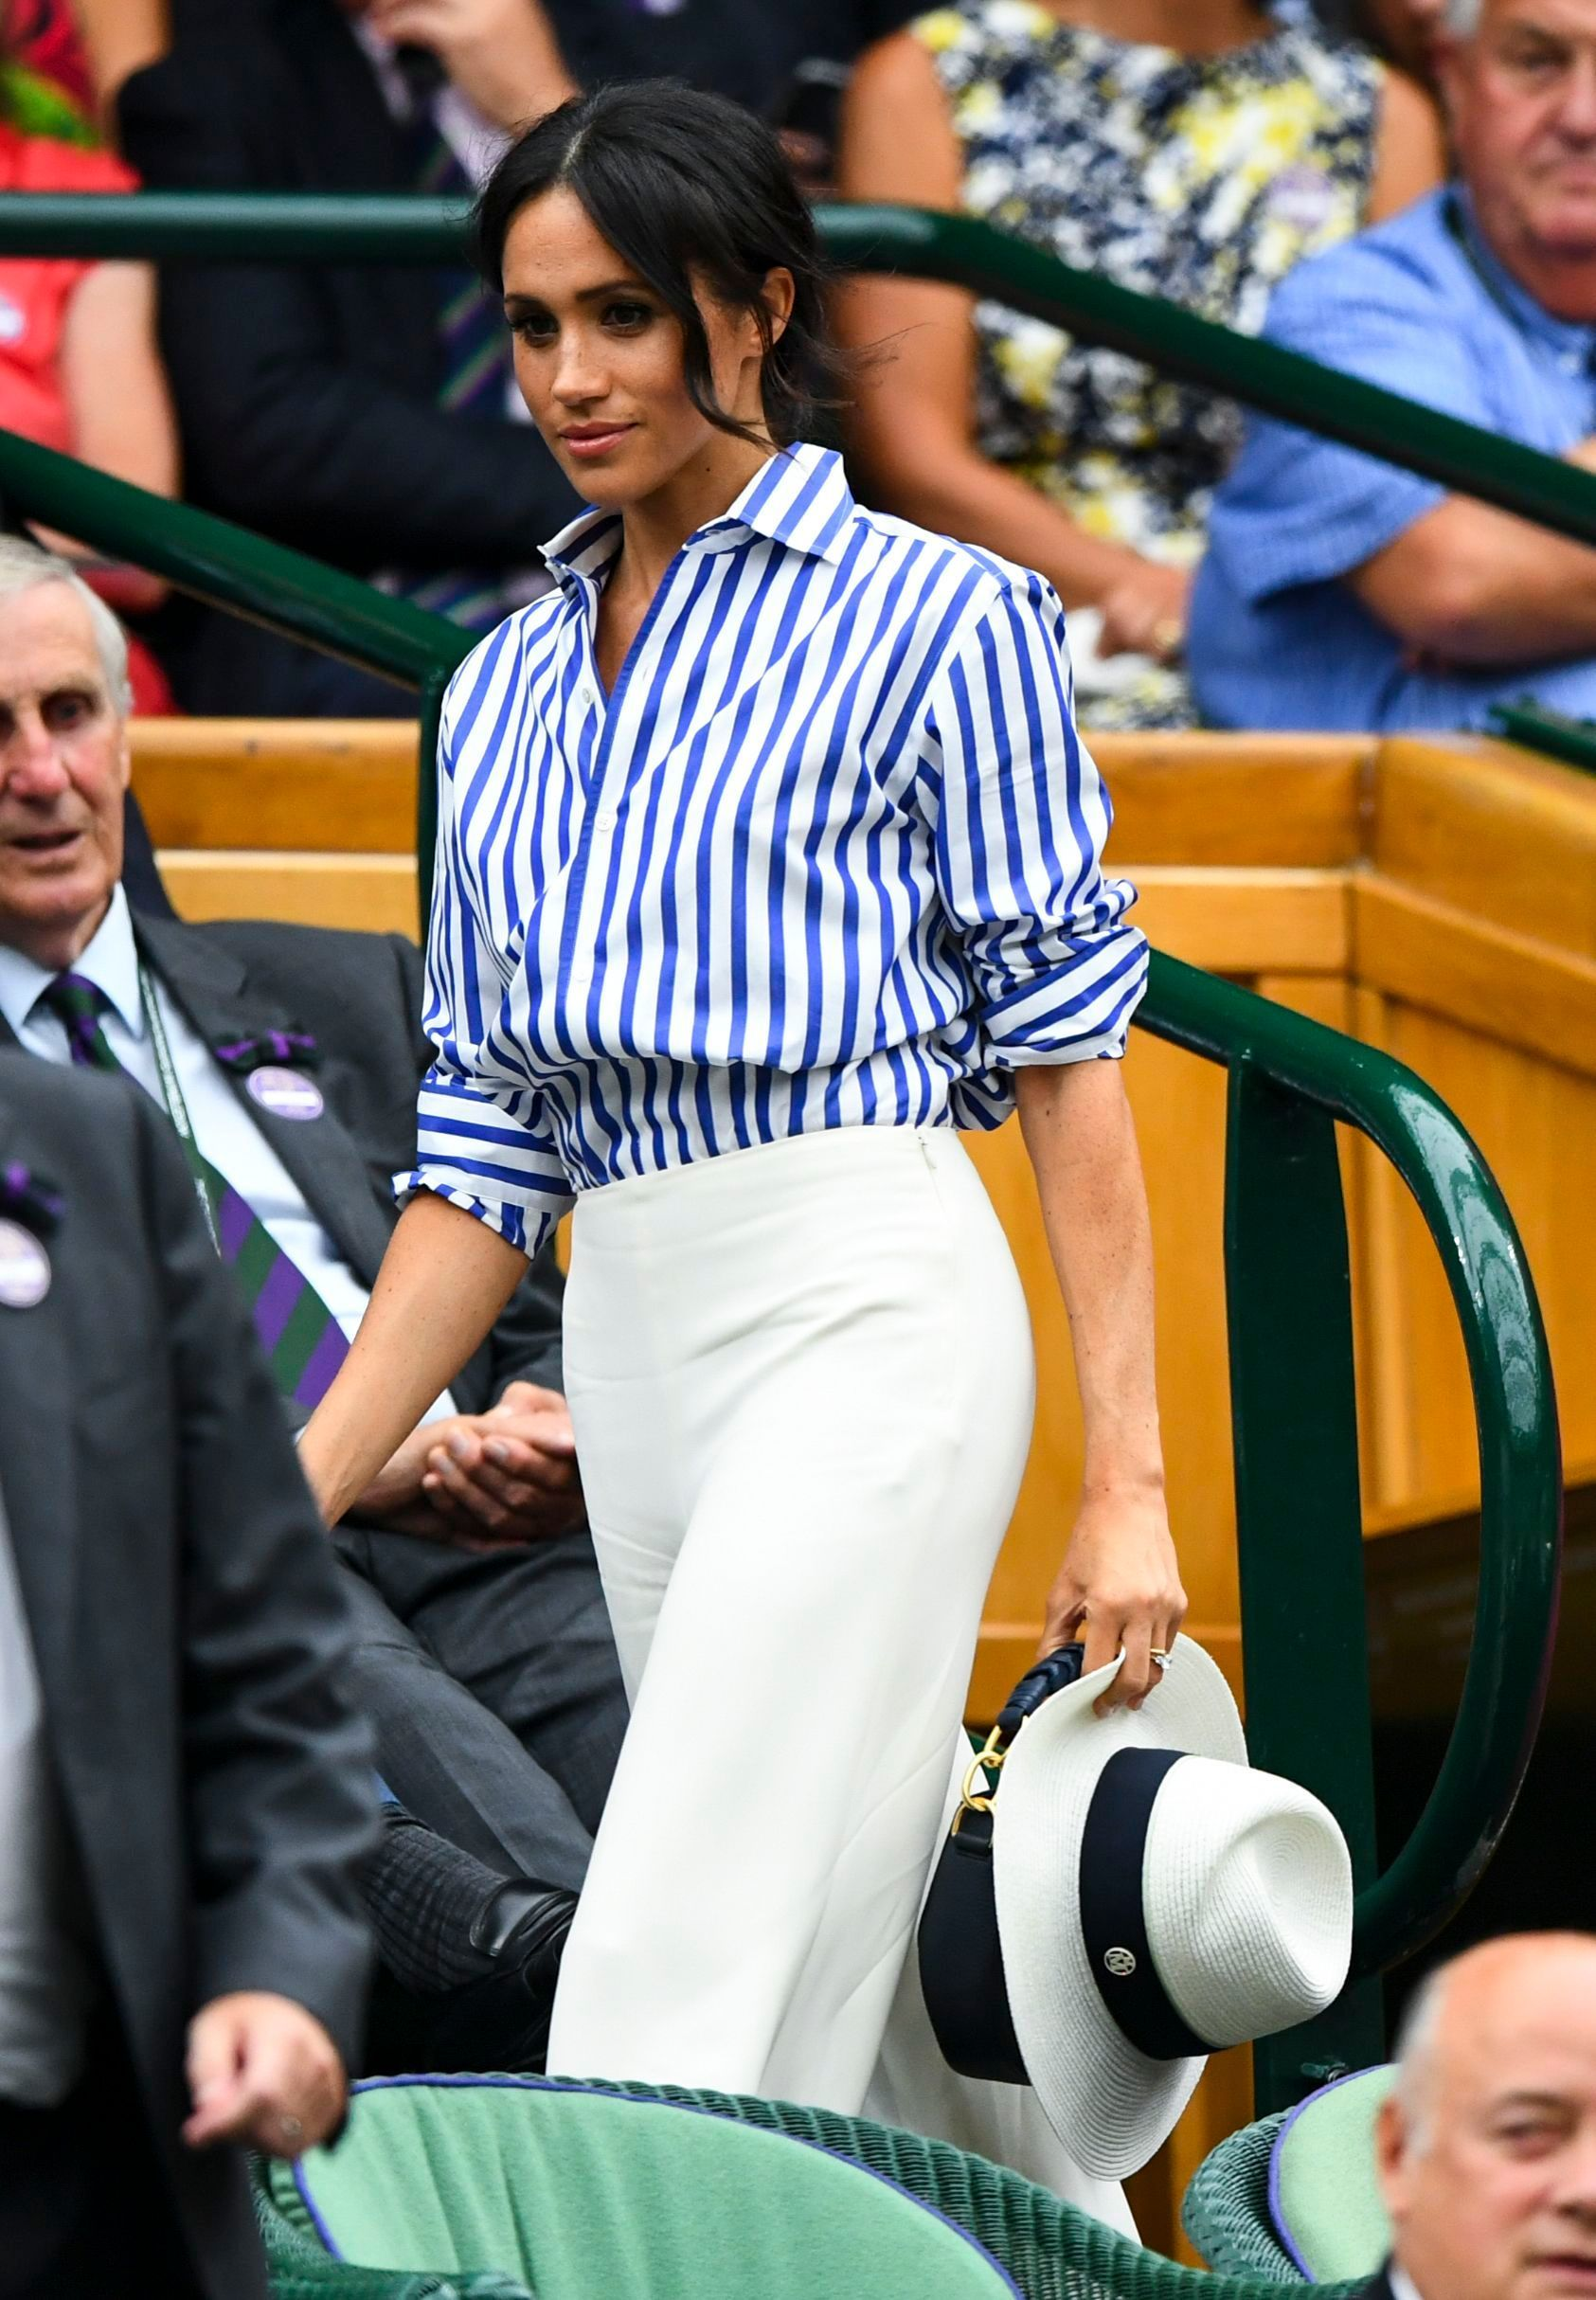 The Most Stylish Moments From Wimbledon 2018 Meghan Markle Style White Slacks Classic Outfits